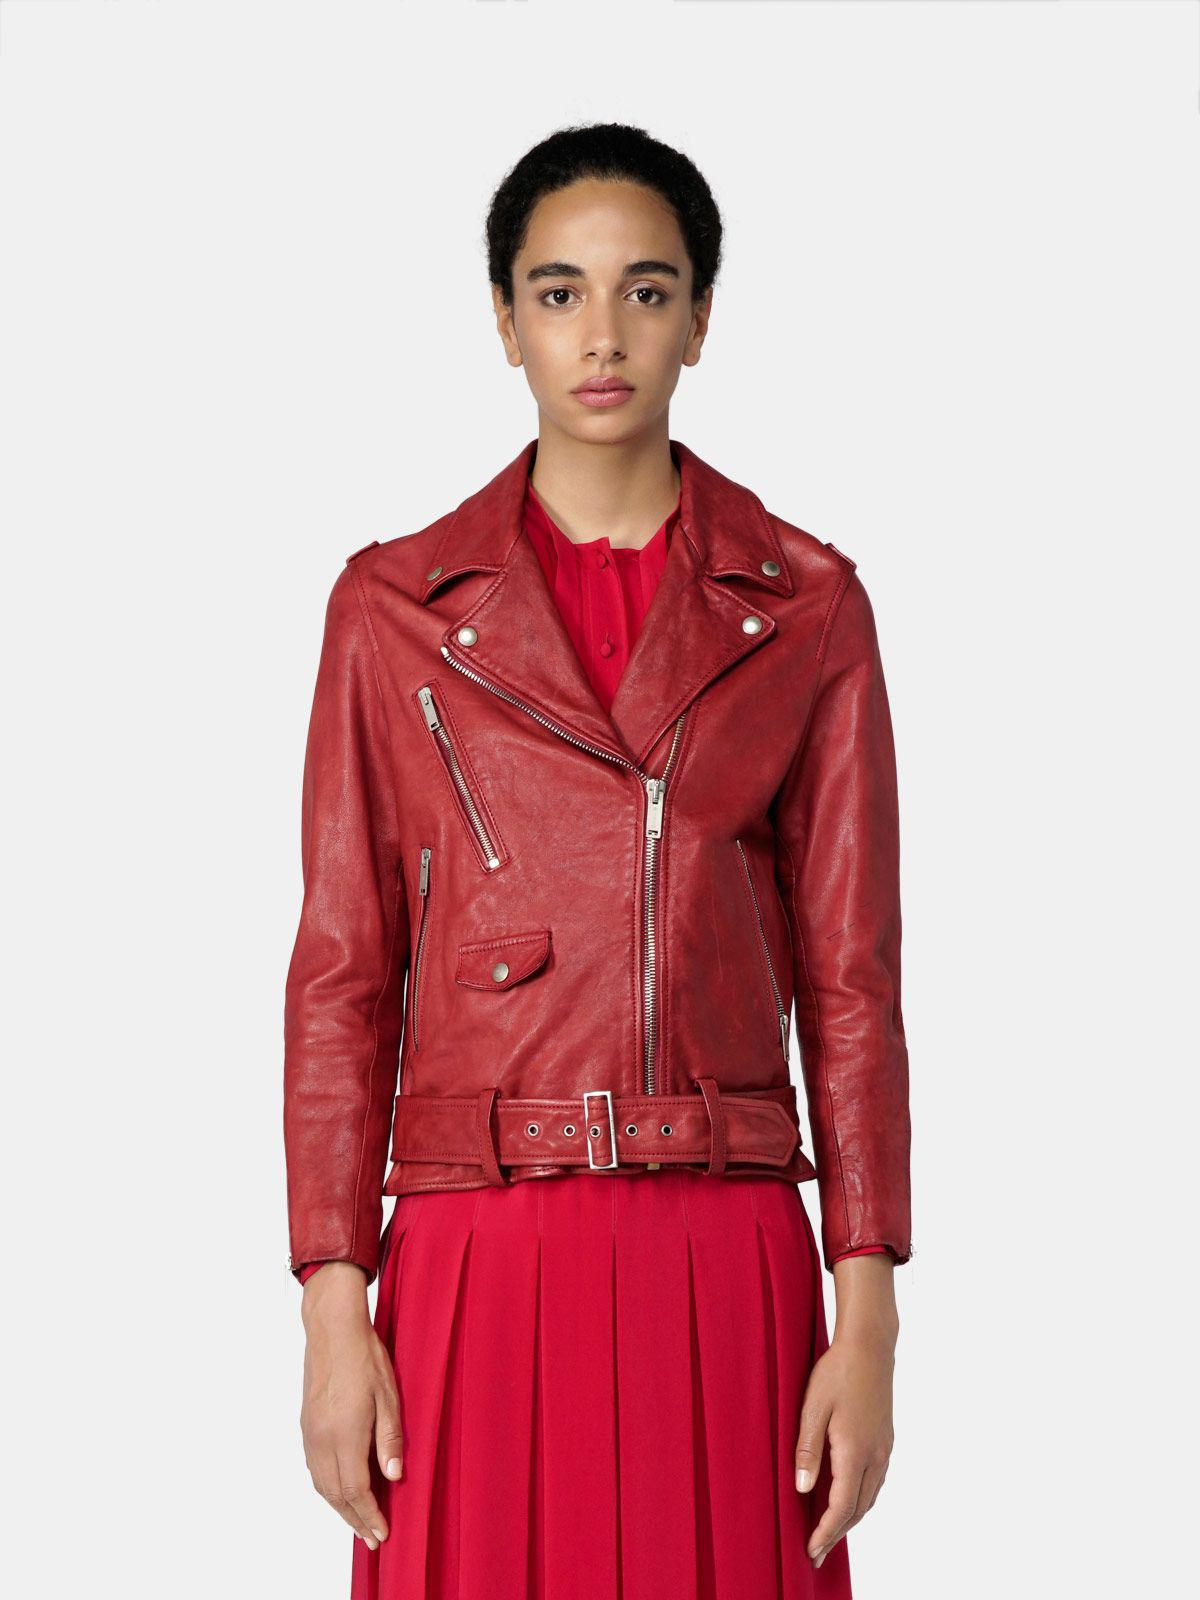 Golden biker jacket in red vegetable-tanned nappa leather